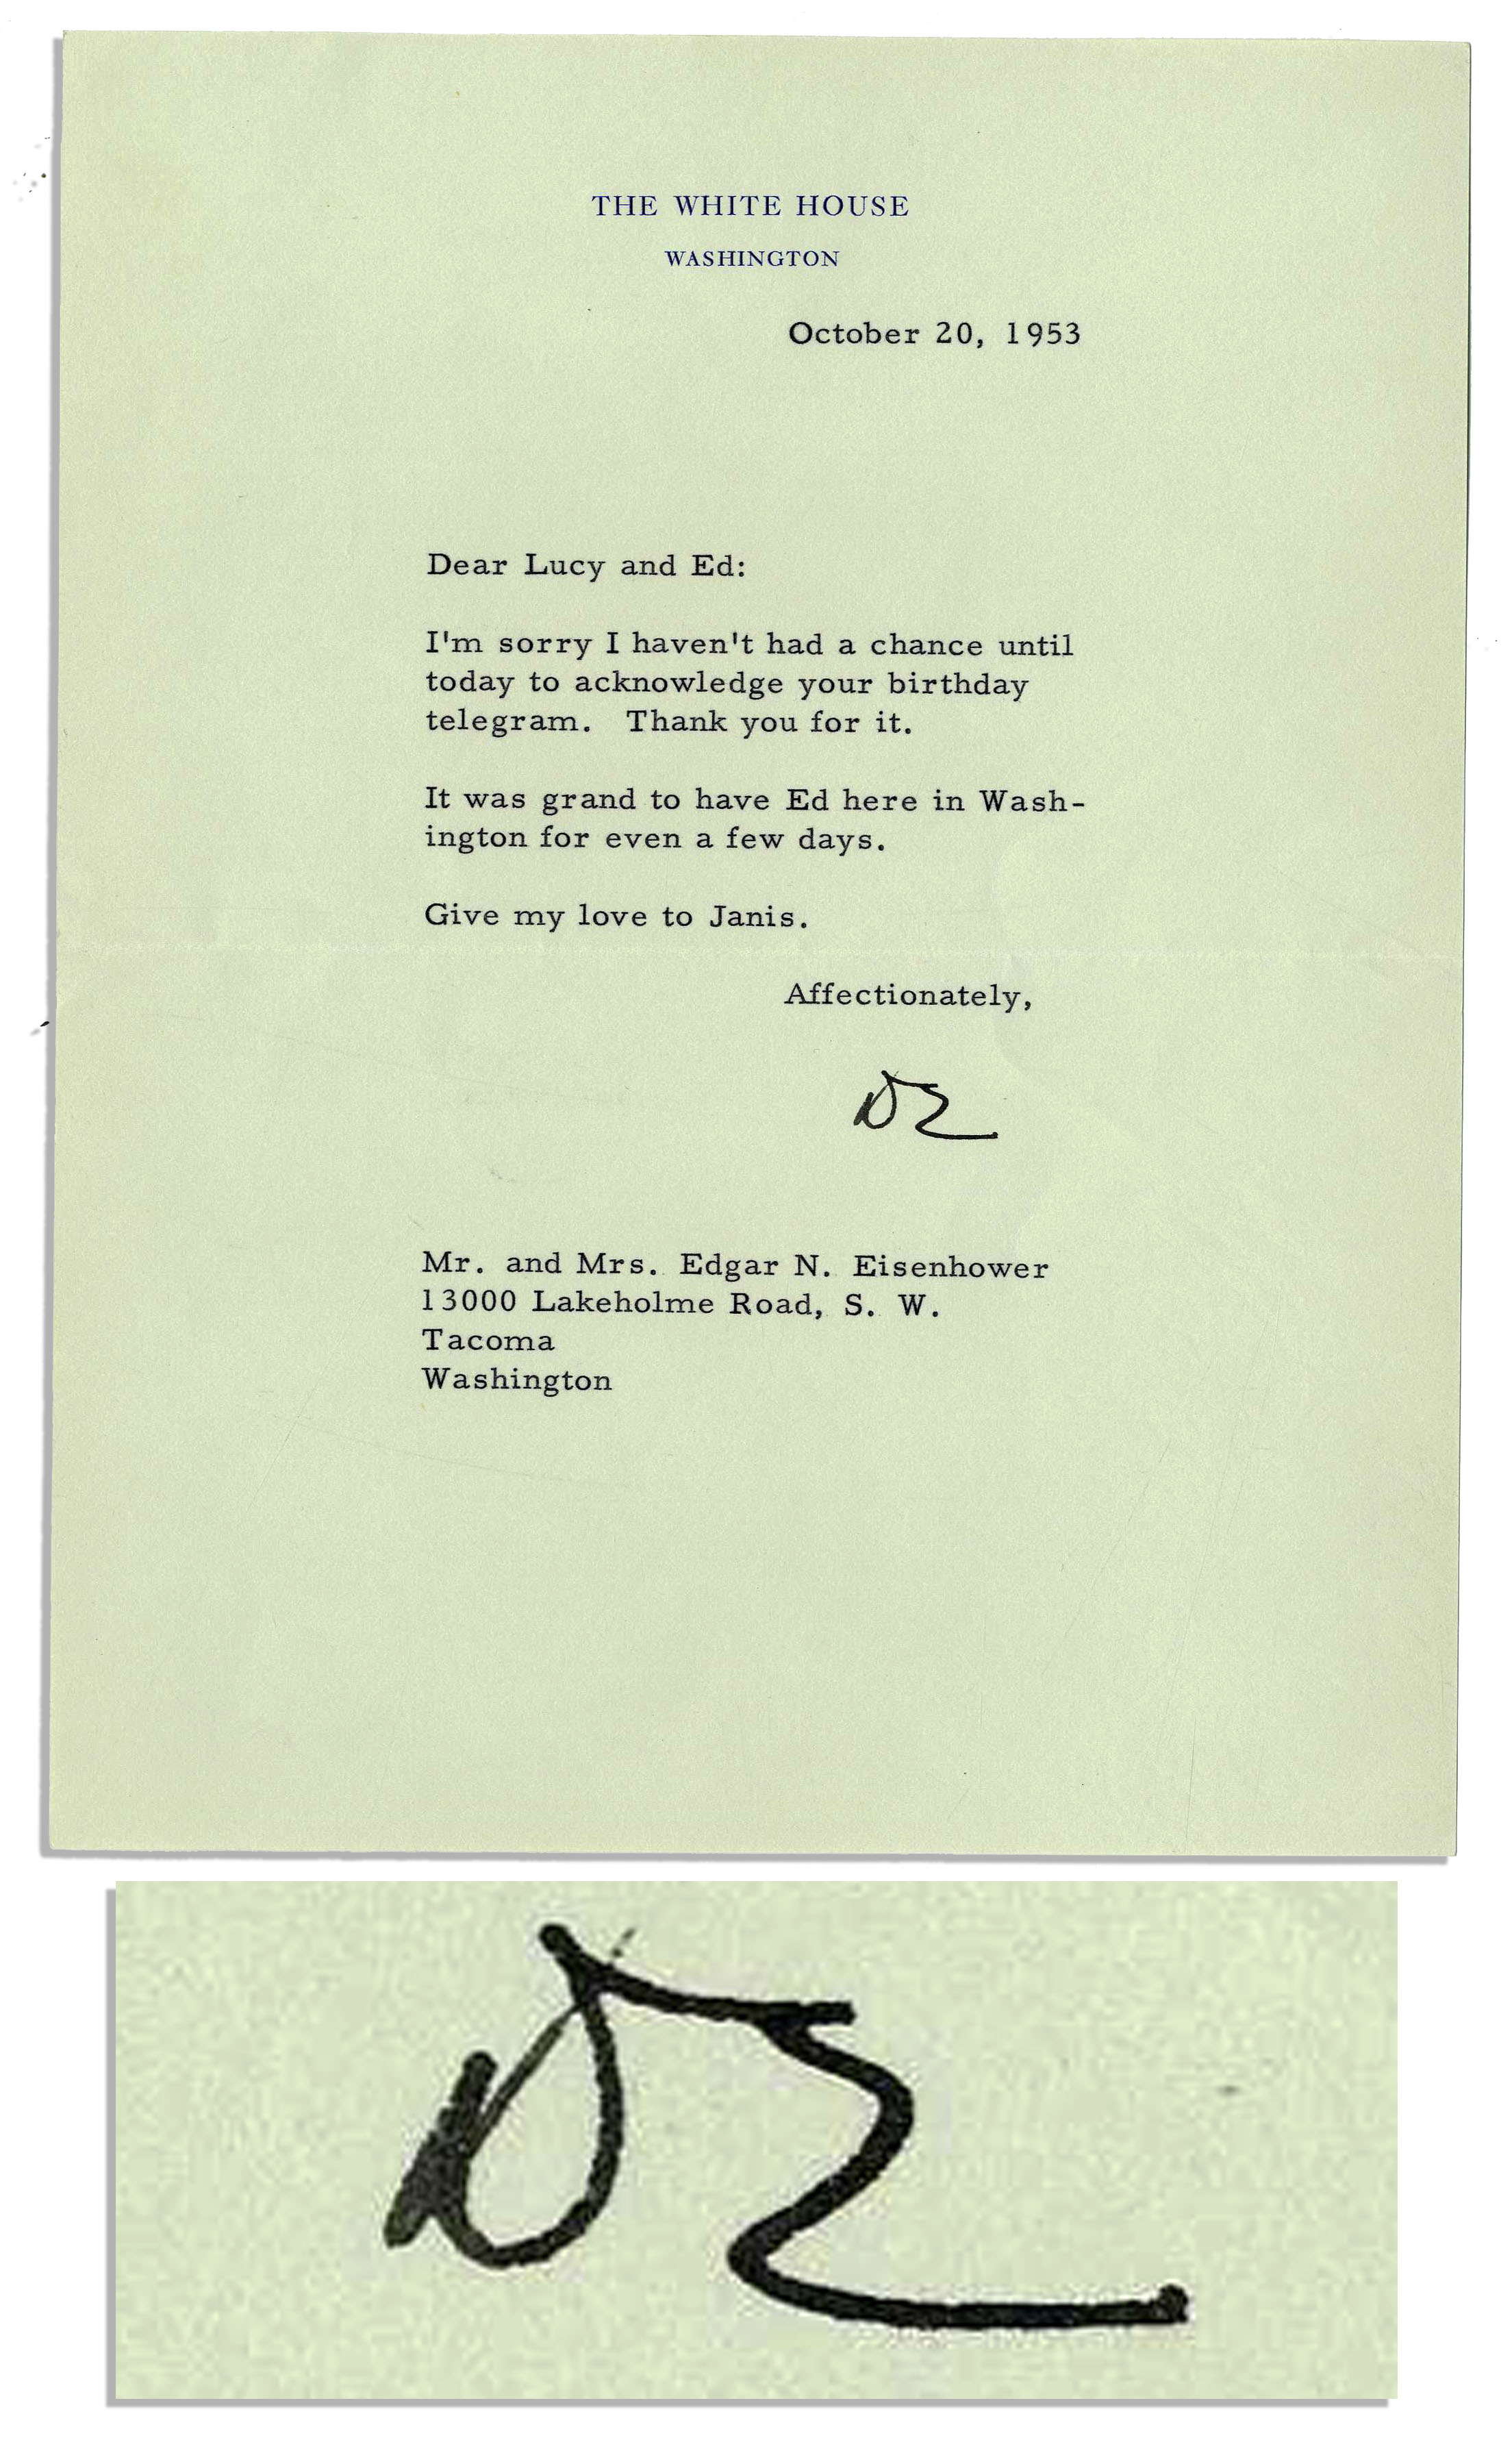 dwight d eisenhower typed letter signed as president thanking his brother for the